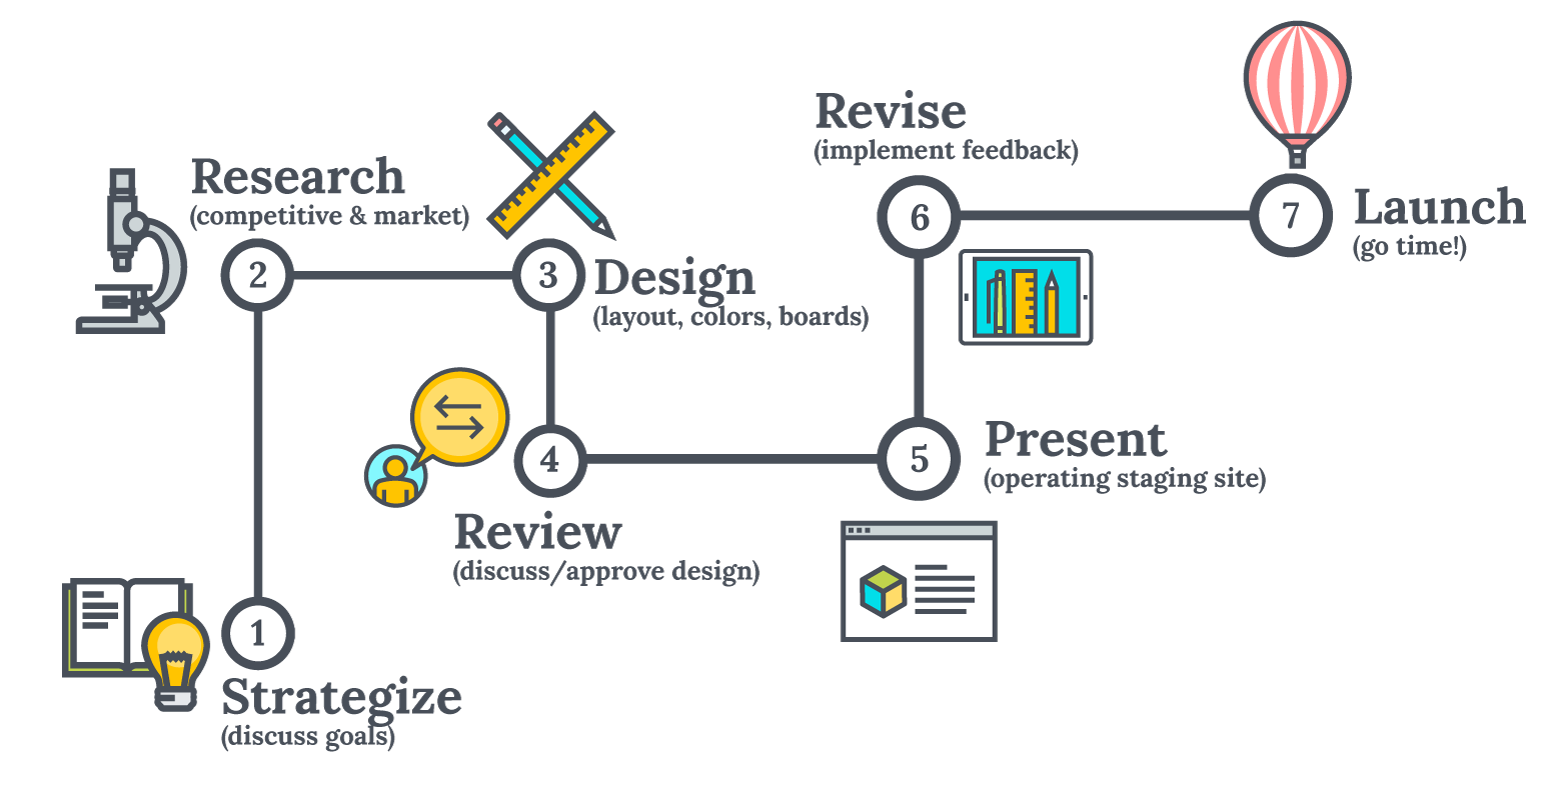 How To Effectively Improve Web Design Process In Just 7 Steps?